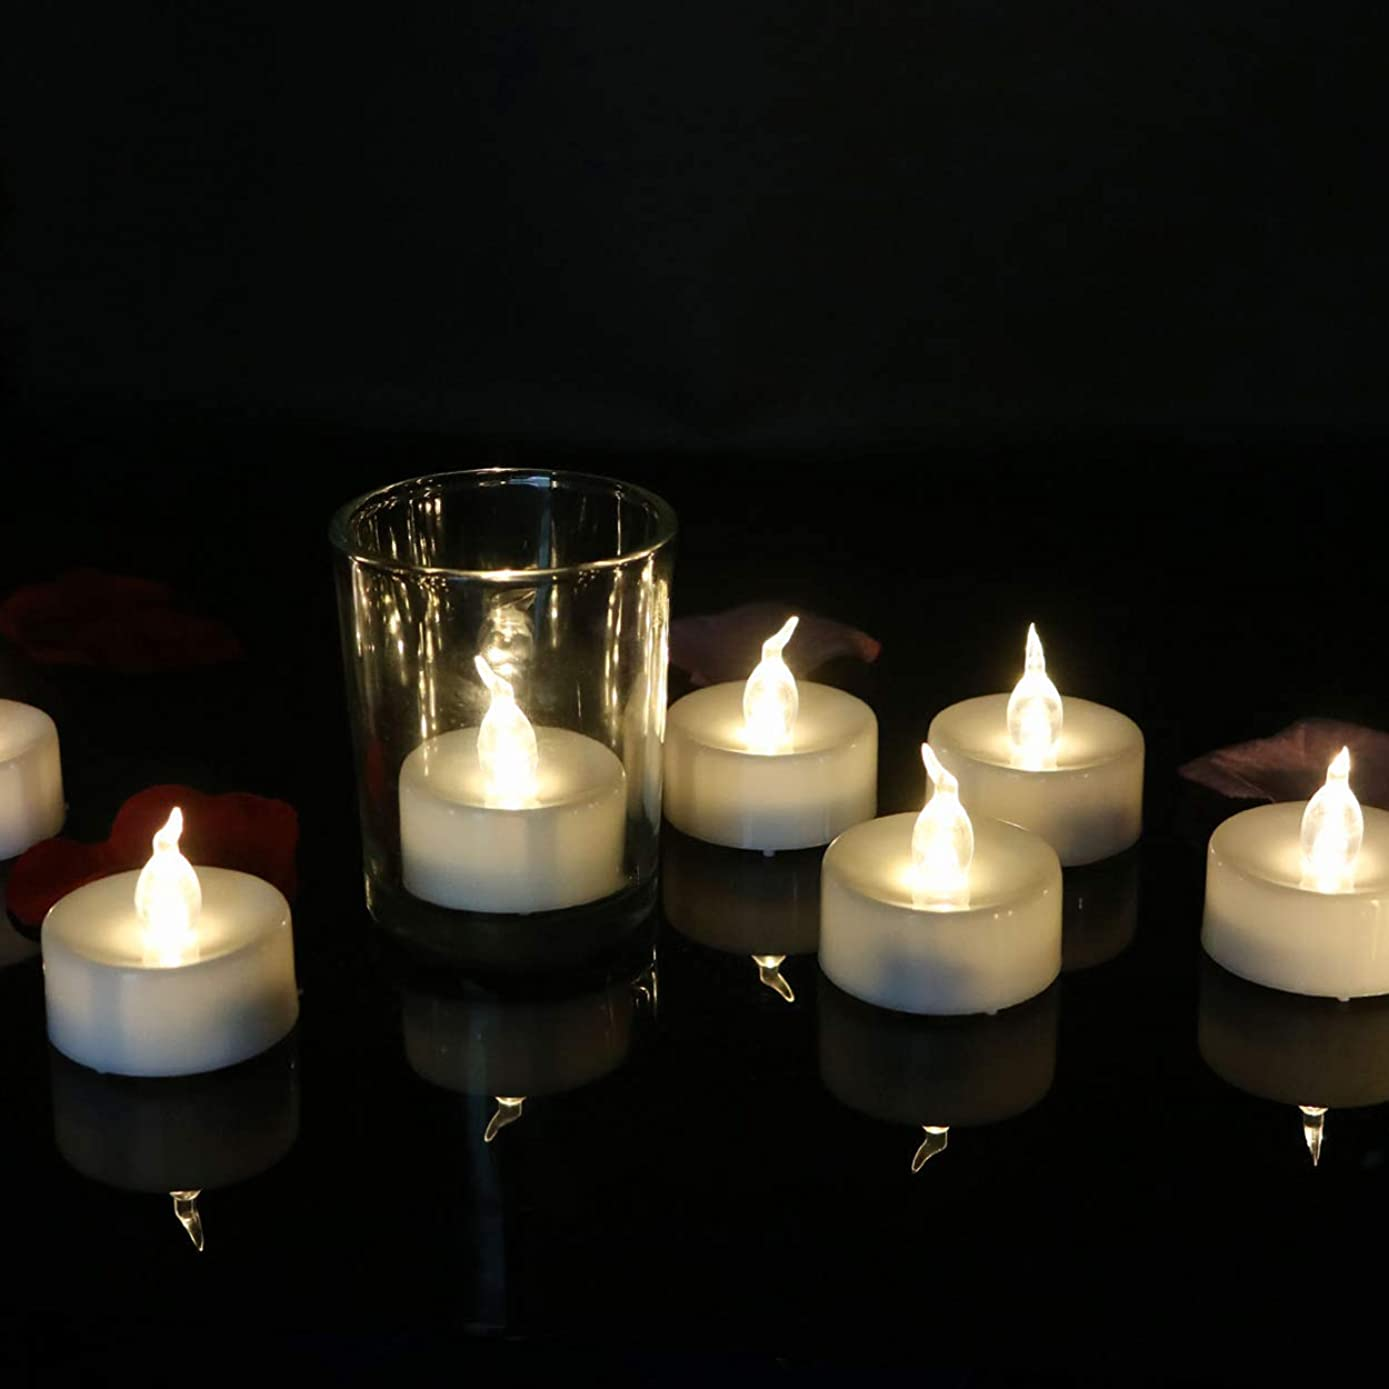 12pcs Tea Lights Electric Timer Battery Operated Flameless Flickering Warm White Led Candles for Halloween Christmas Thanksgiving Decorations